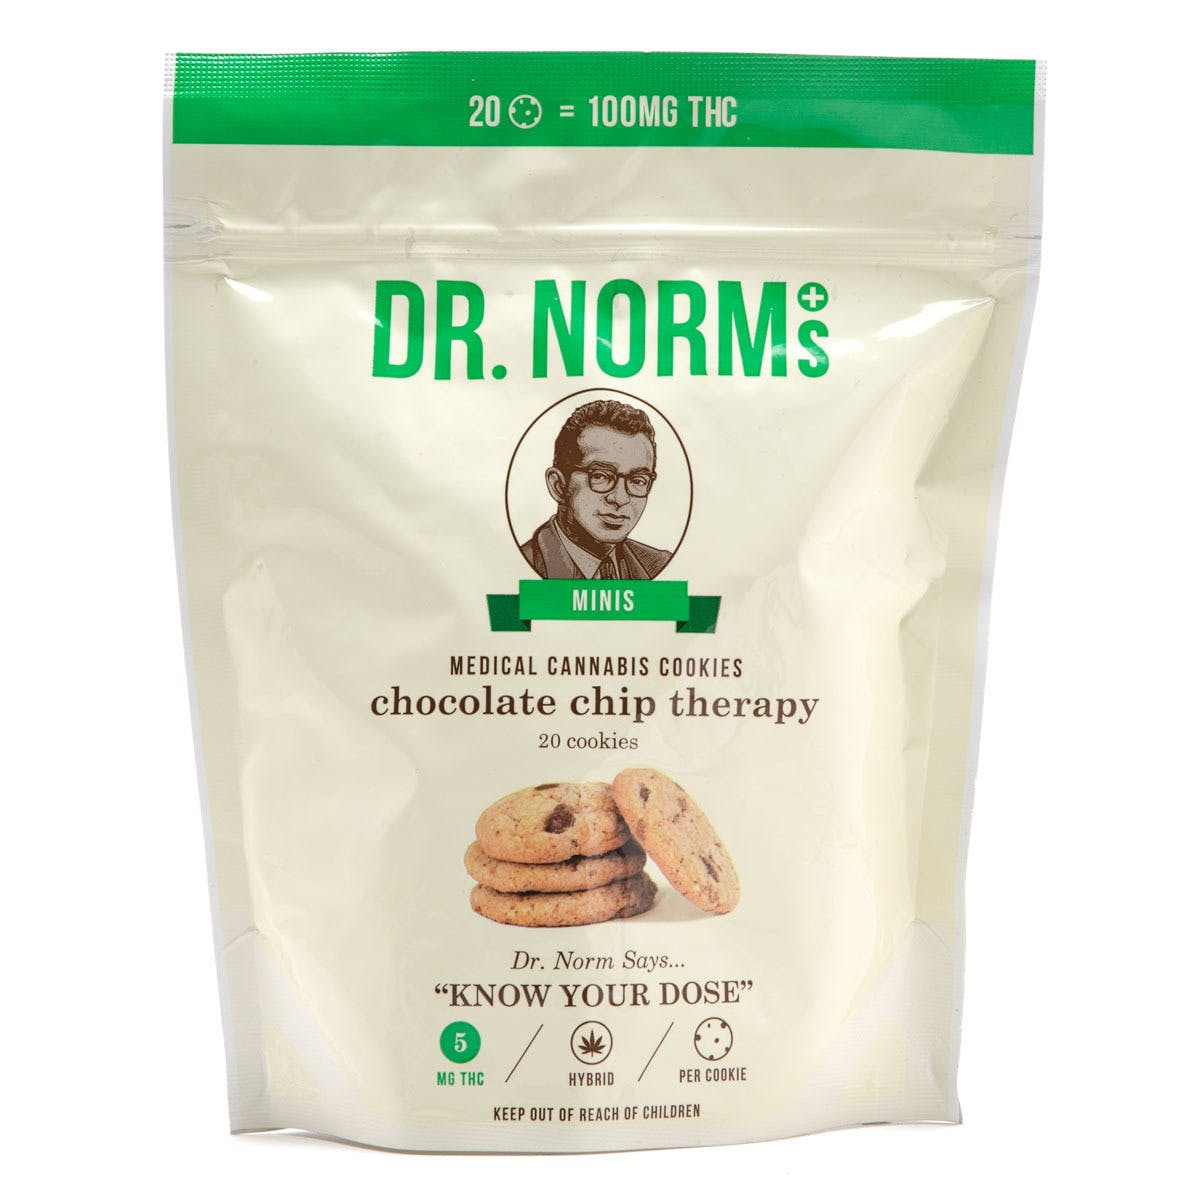 marijuana-dispensaries-urban-treez-adult-use-in-studio-city-5mg-choco-chip-therapy-bag-100mg-total